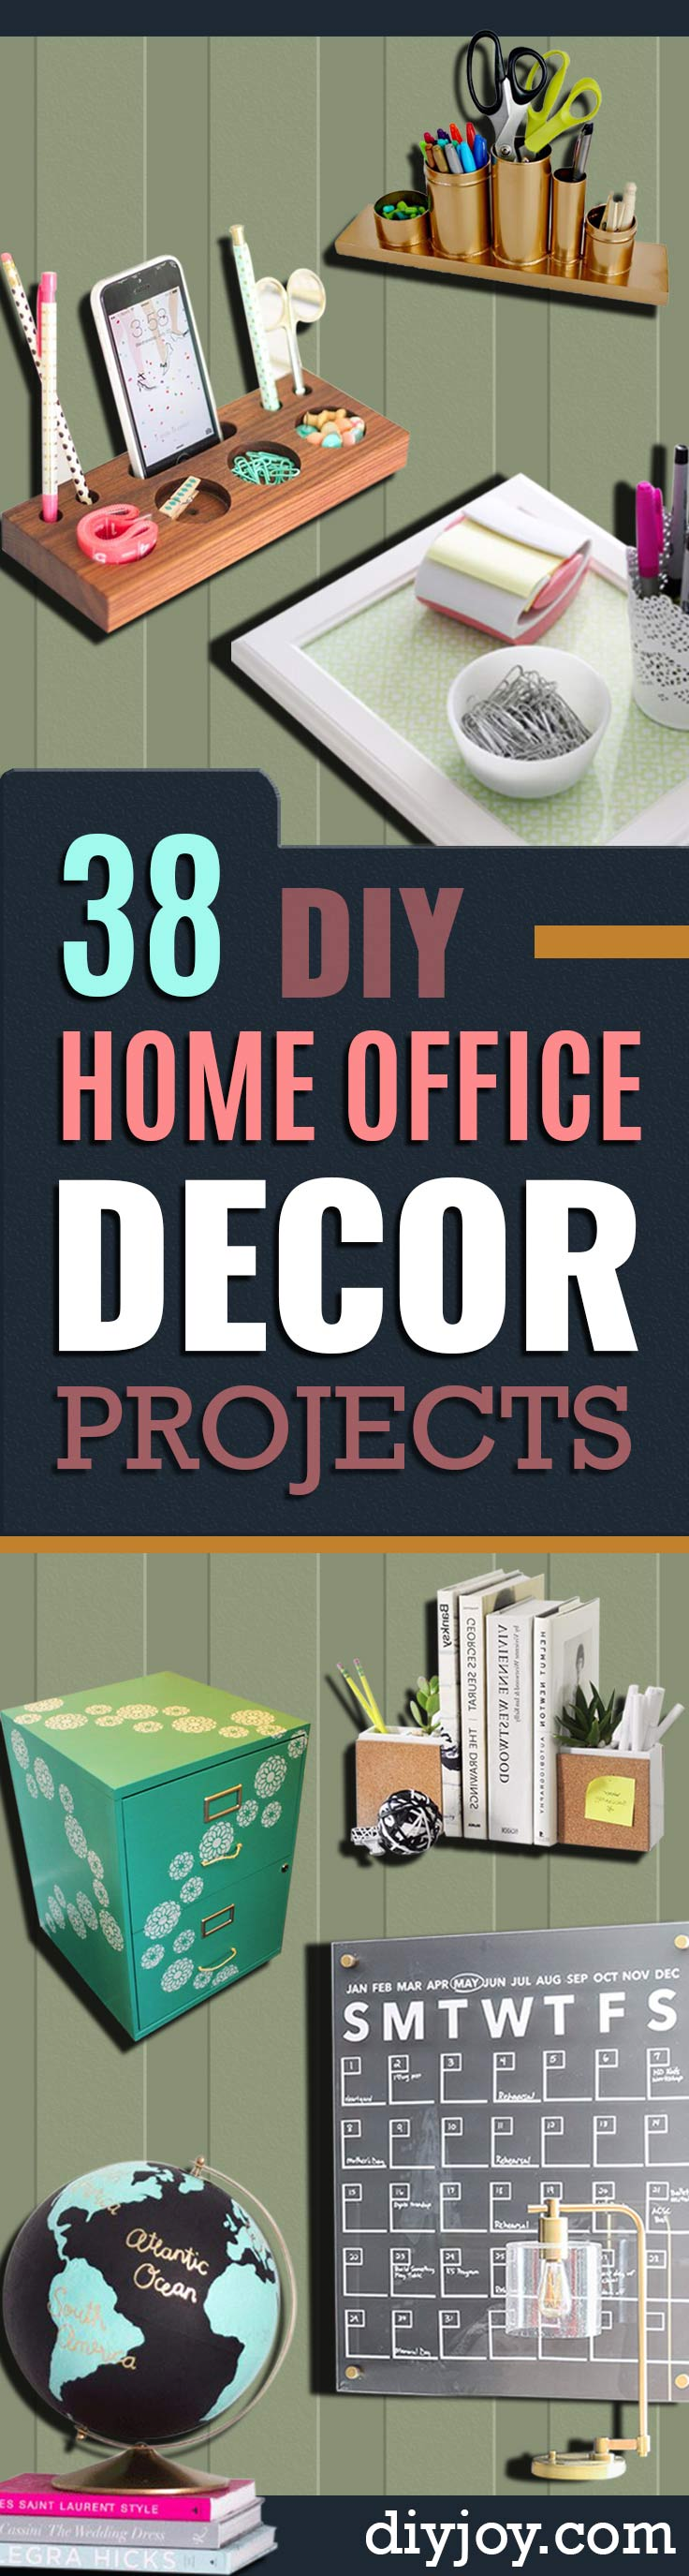 38 brilliant home office decor projects diy home office decor ideas do it yourself desks tables wall art solutioingenieria